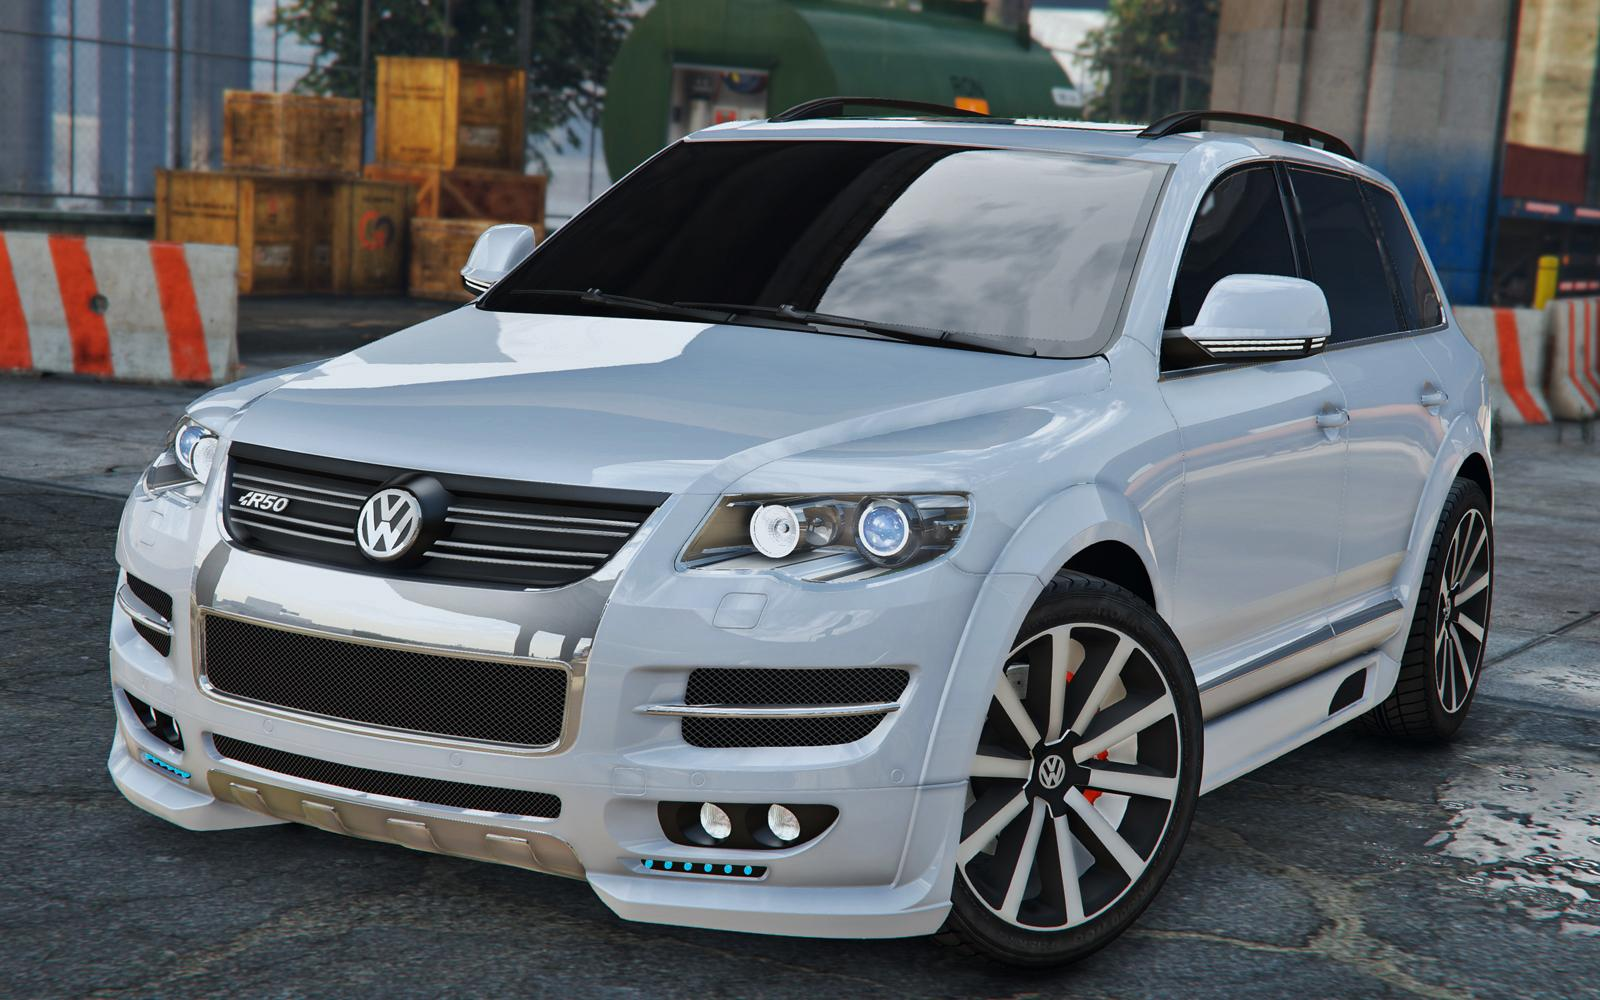 volkswagen touareg 2008 r50 add on replace tuning gta5. Black Bedroom Furniture Sets. Home Design Ideas